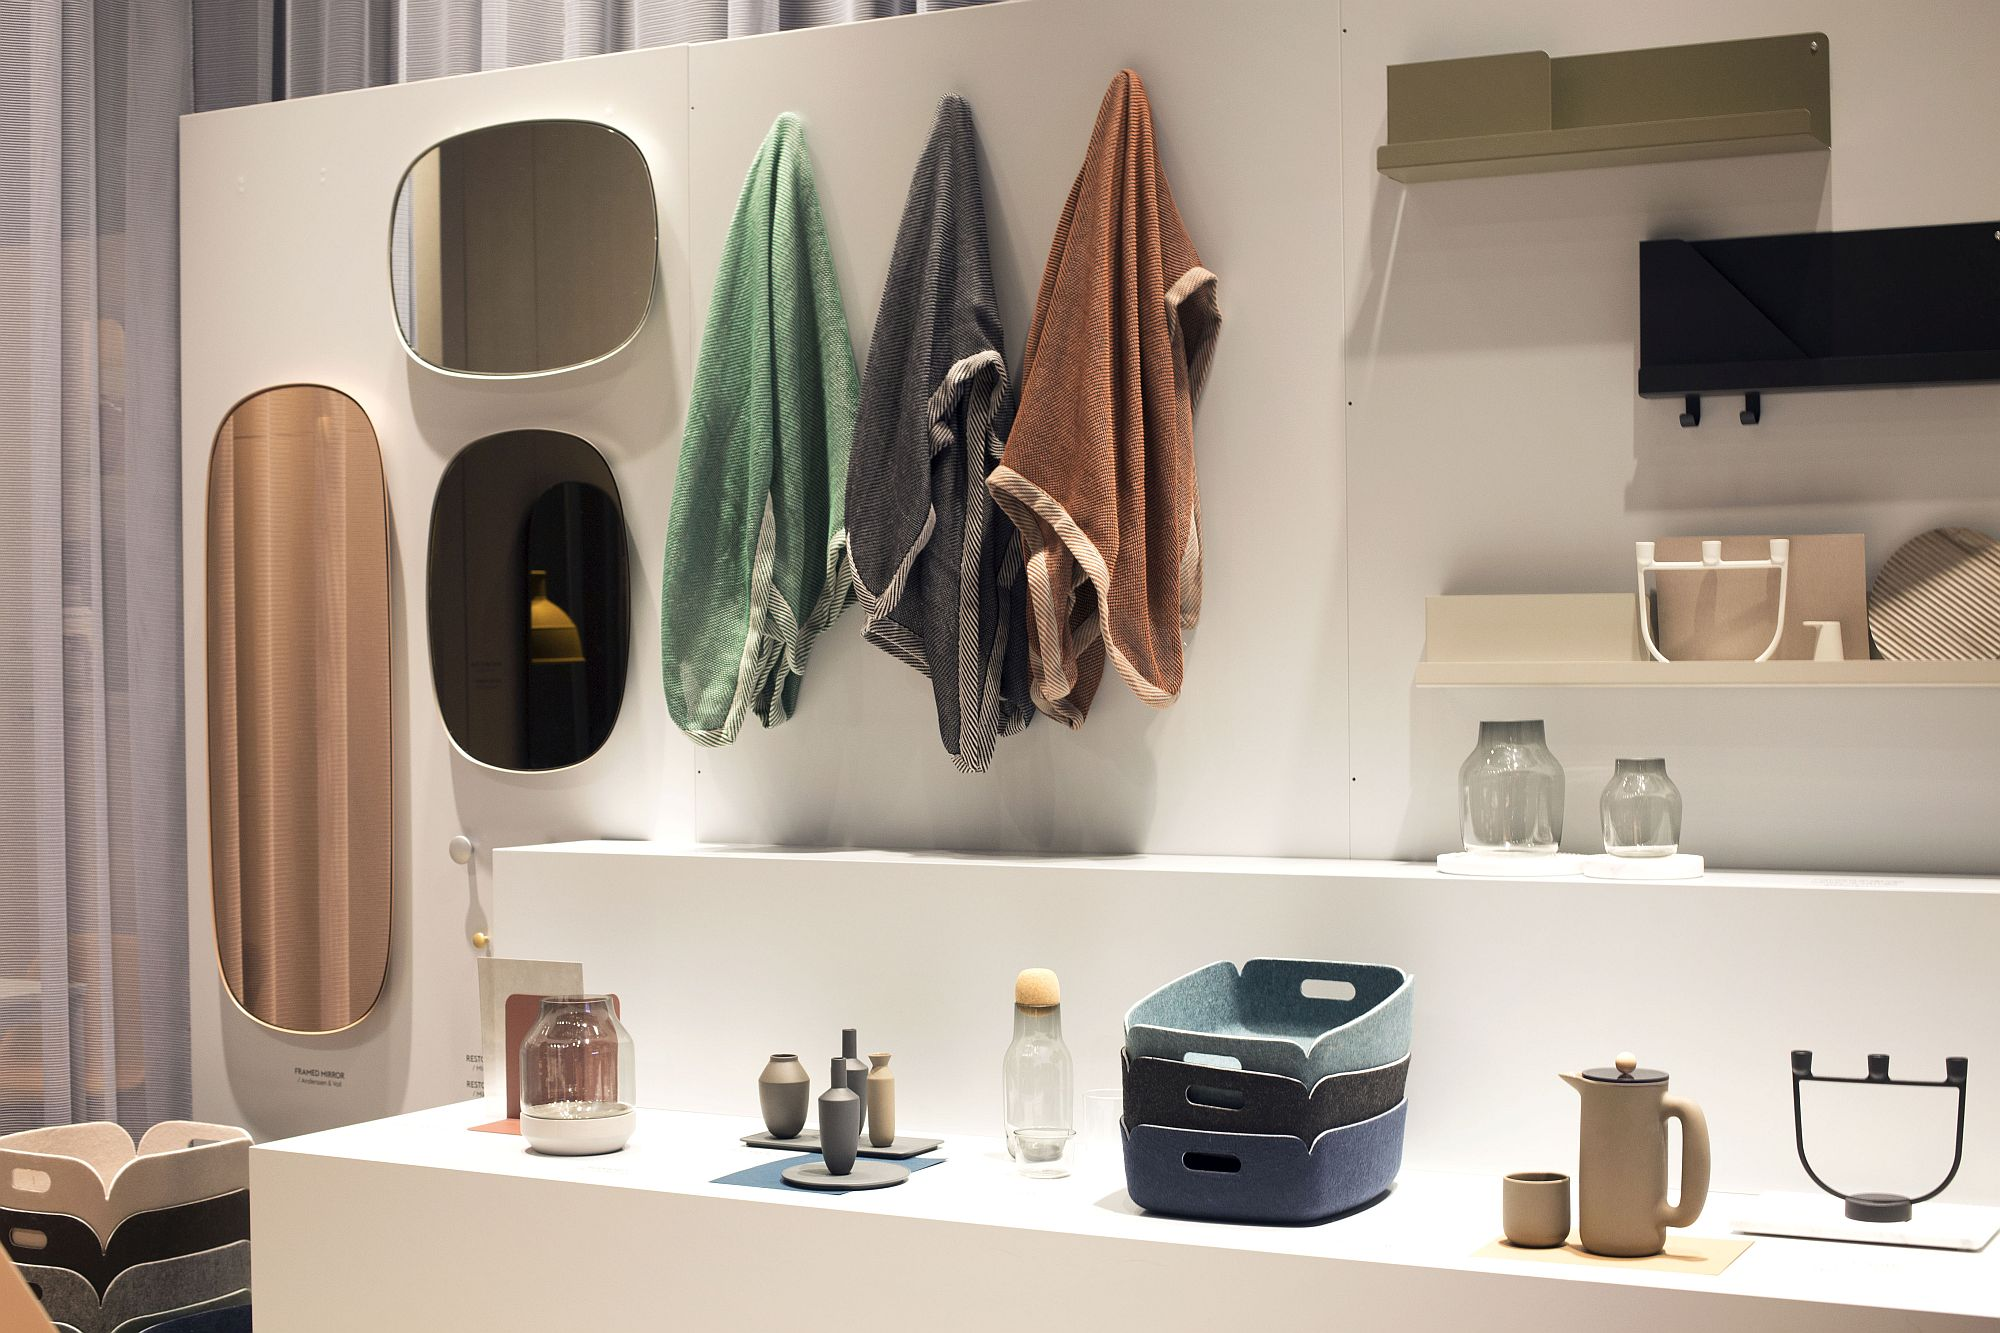 New age bathroom and decor redefines your interior IMM Cologne 2017: Celebration of Hottest Design and Décor Trends